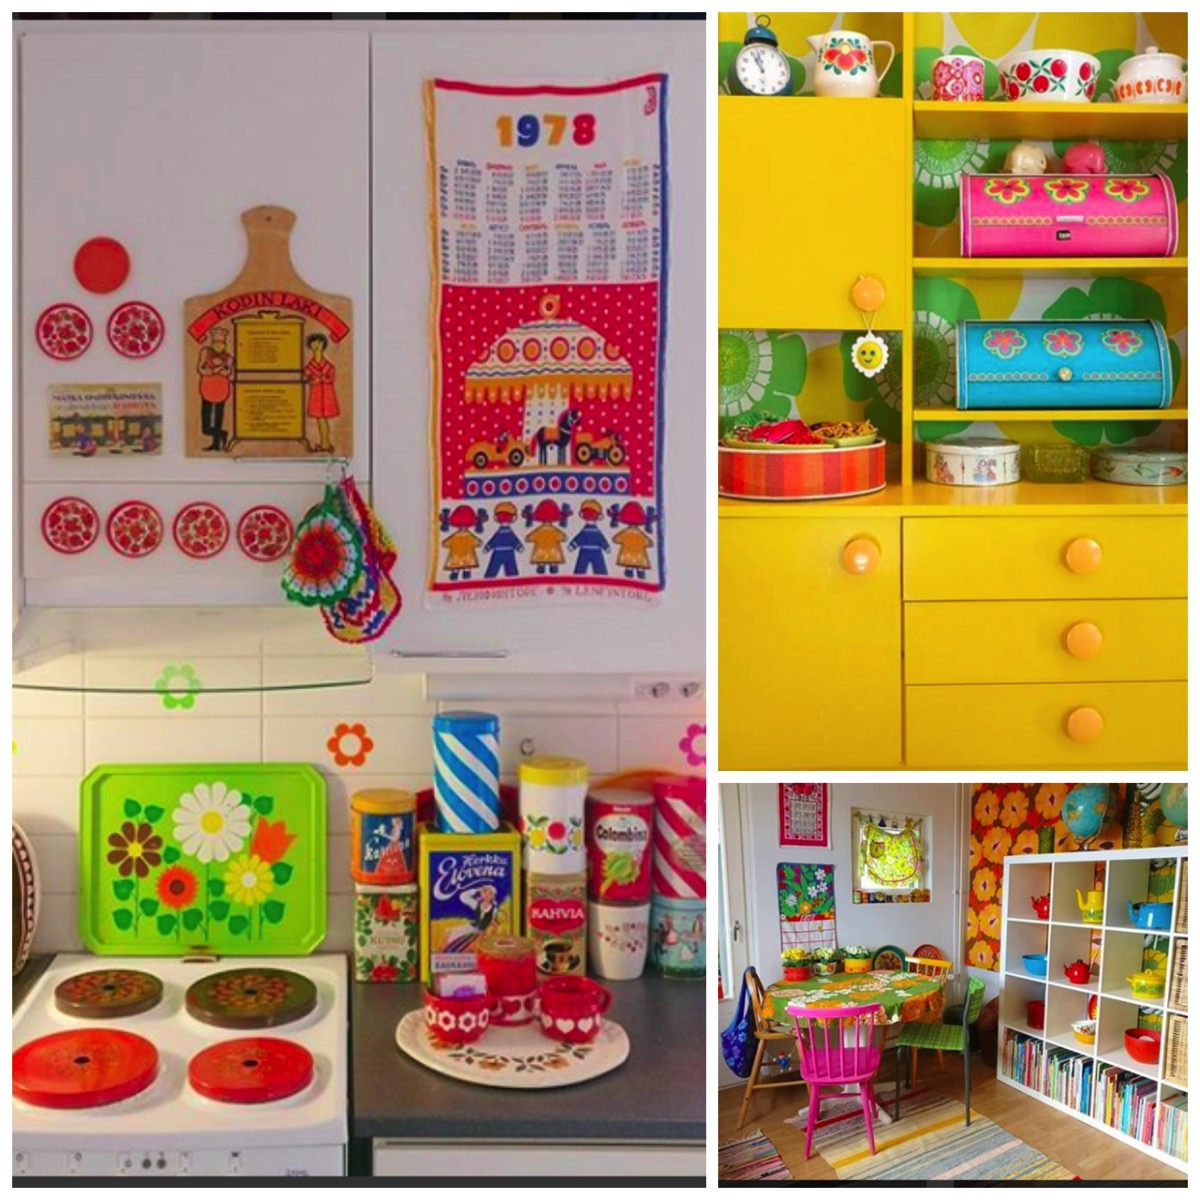 Vintage colorful kitchen and dining room